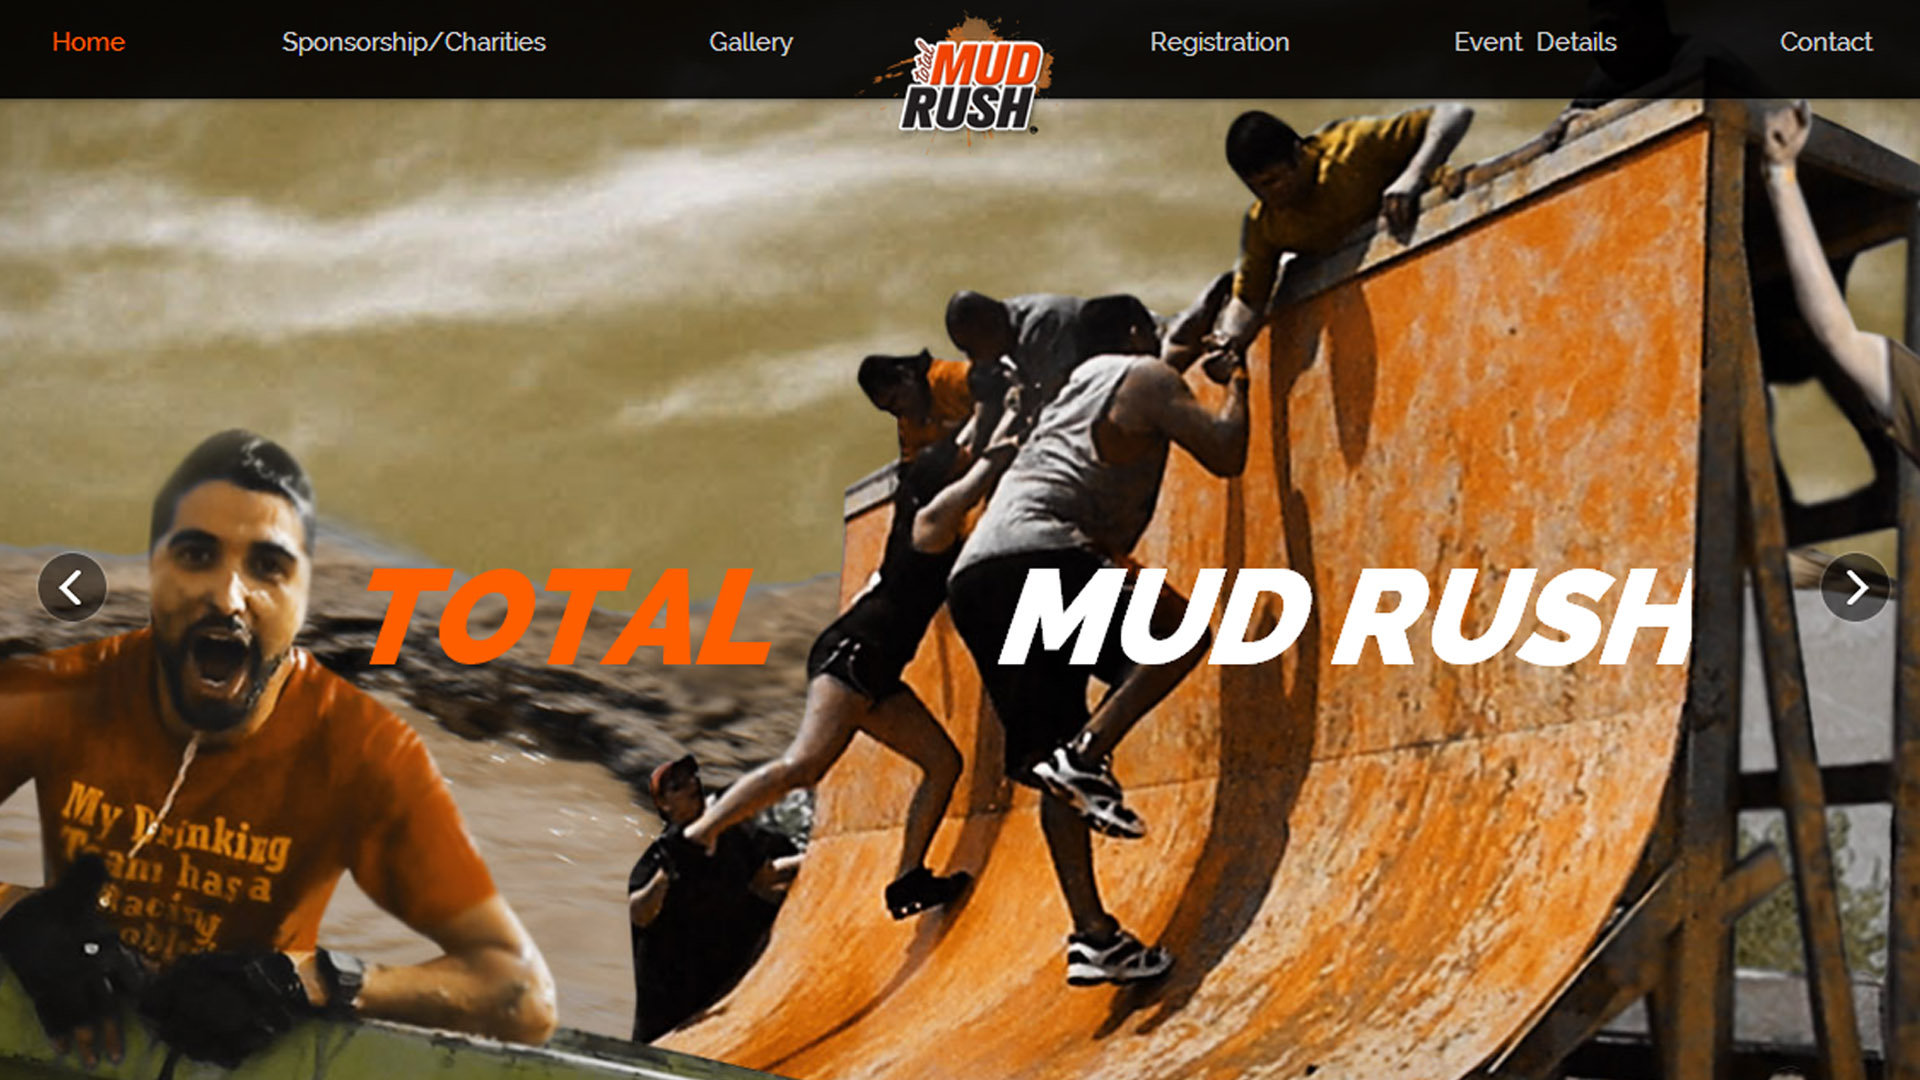 total mud rush